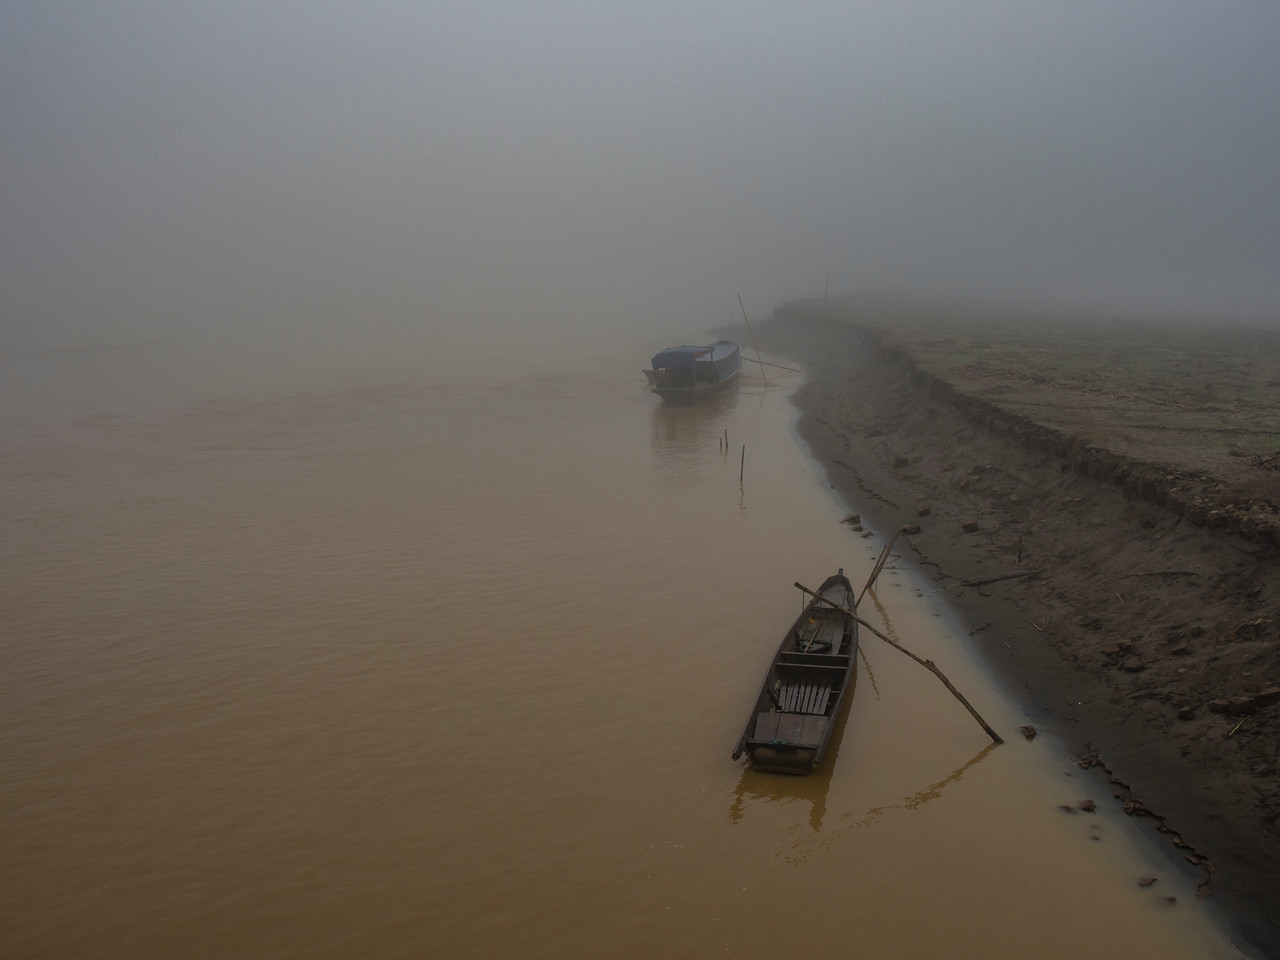 Boats in the morning mist on the Chindwin River